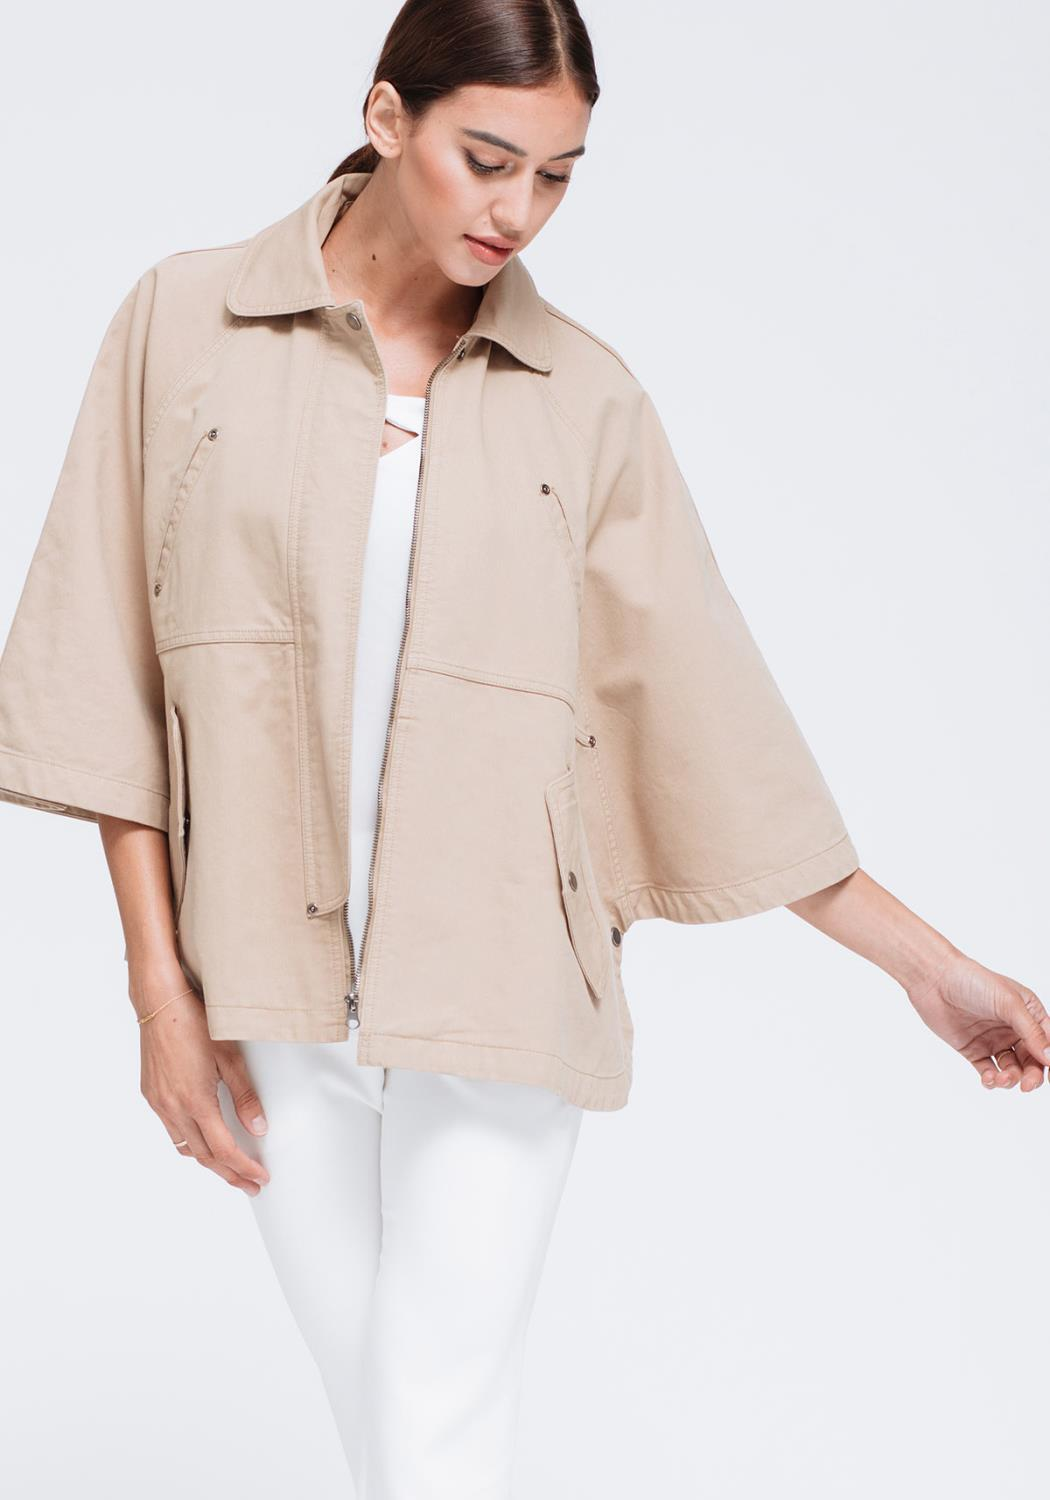 Batwing Sleeve Fall Jacket